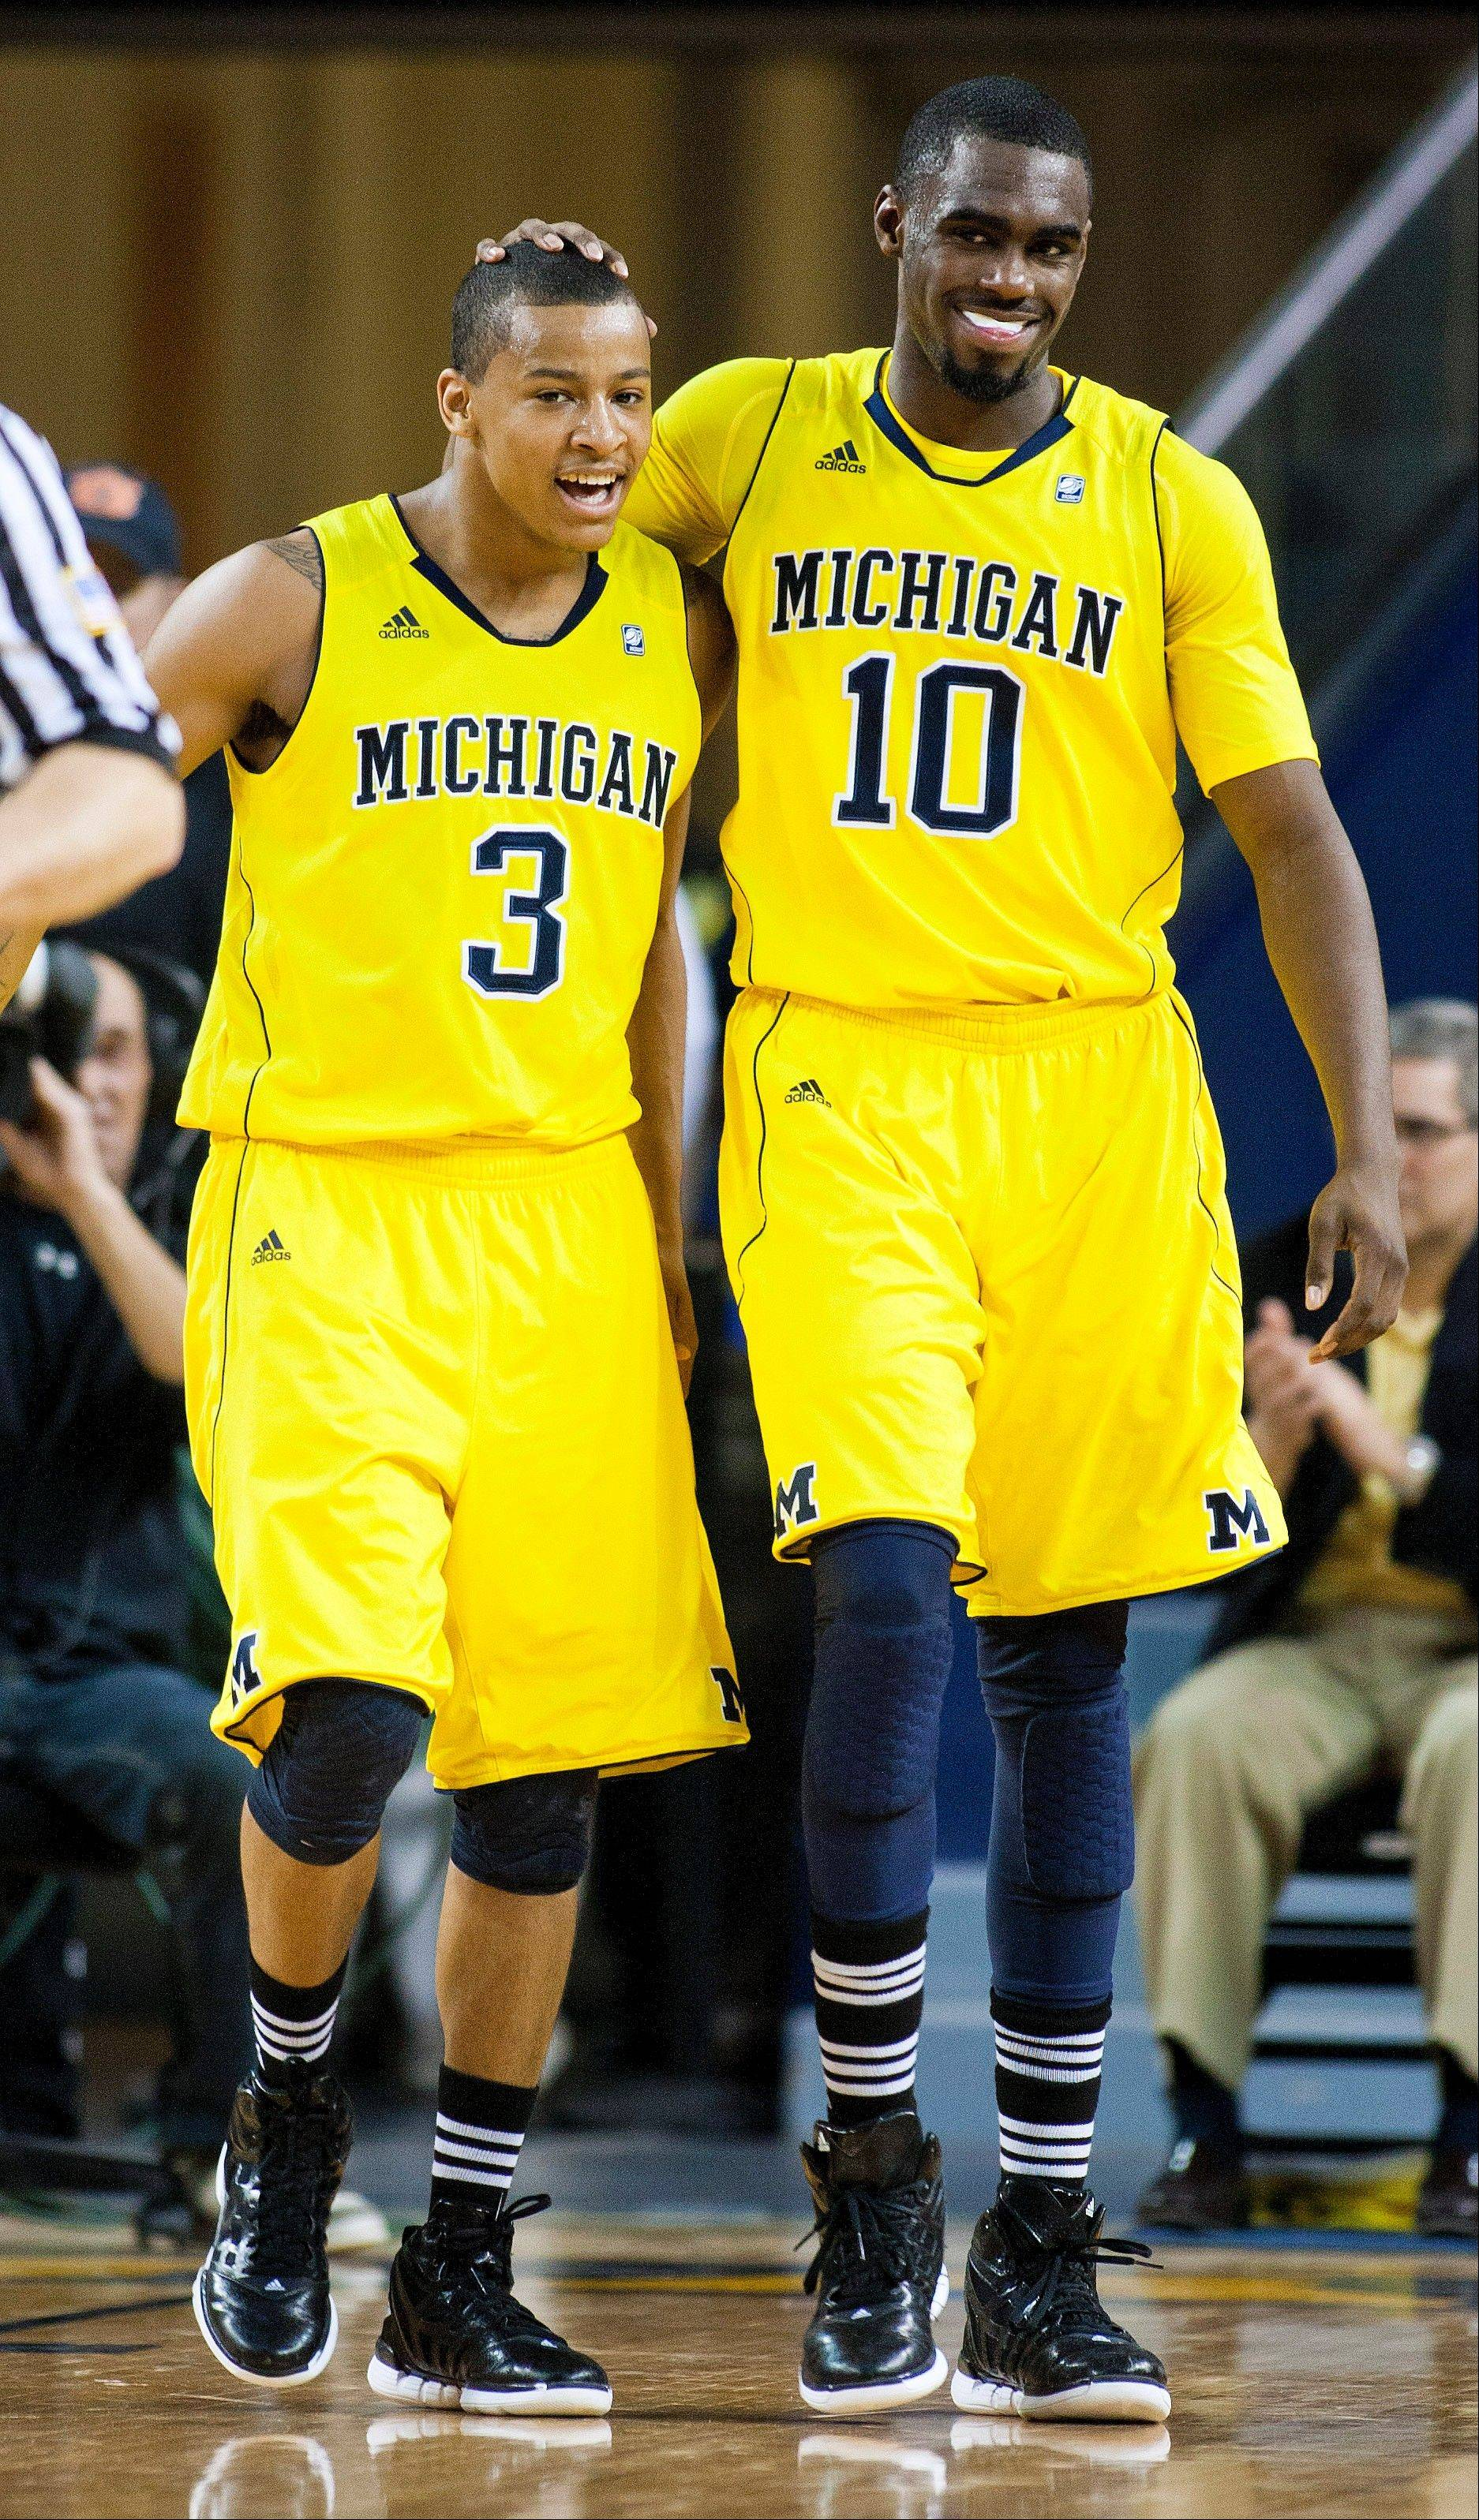 Michigan guards Trey Burke, left, and Tim Hardaway Jr. will be back for the 2012-13 season.